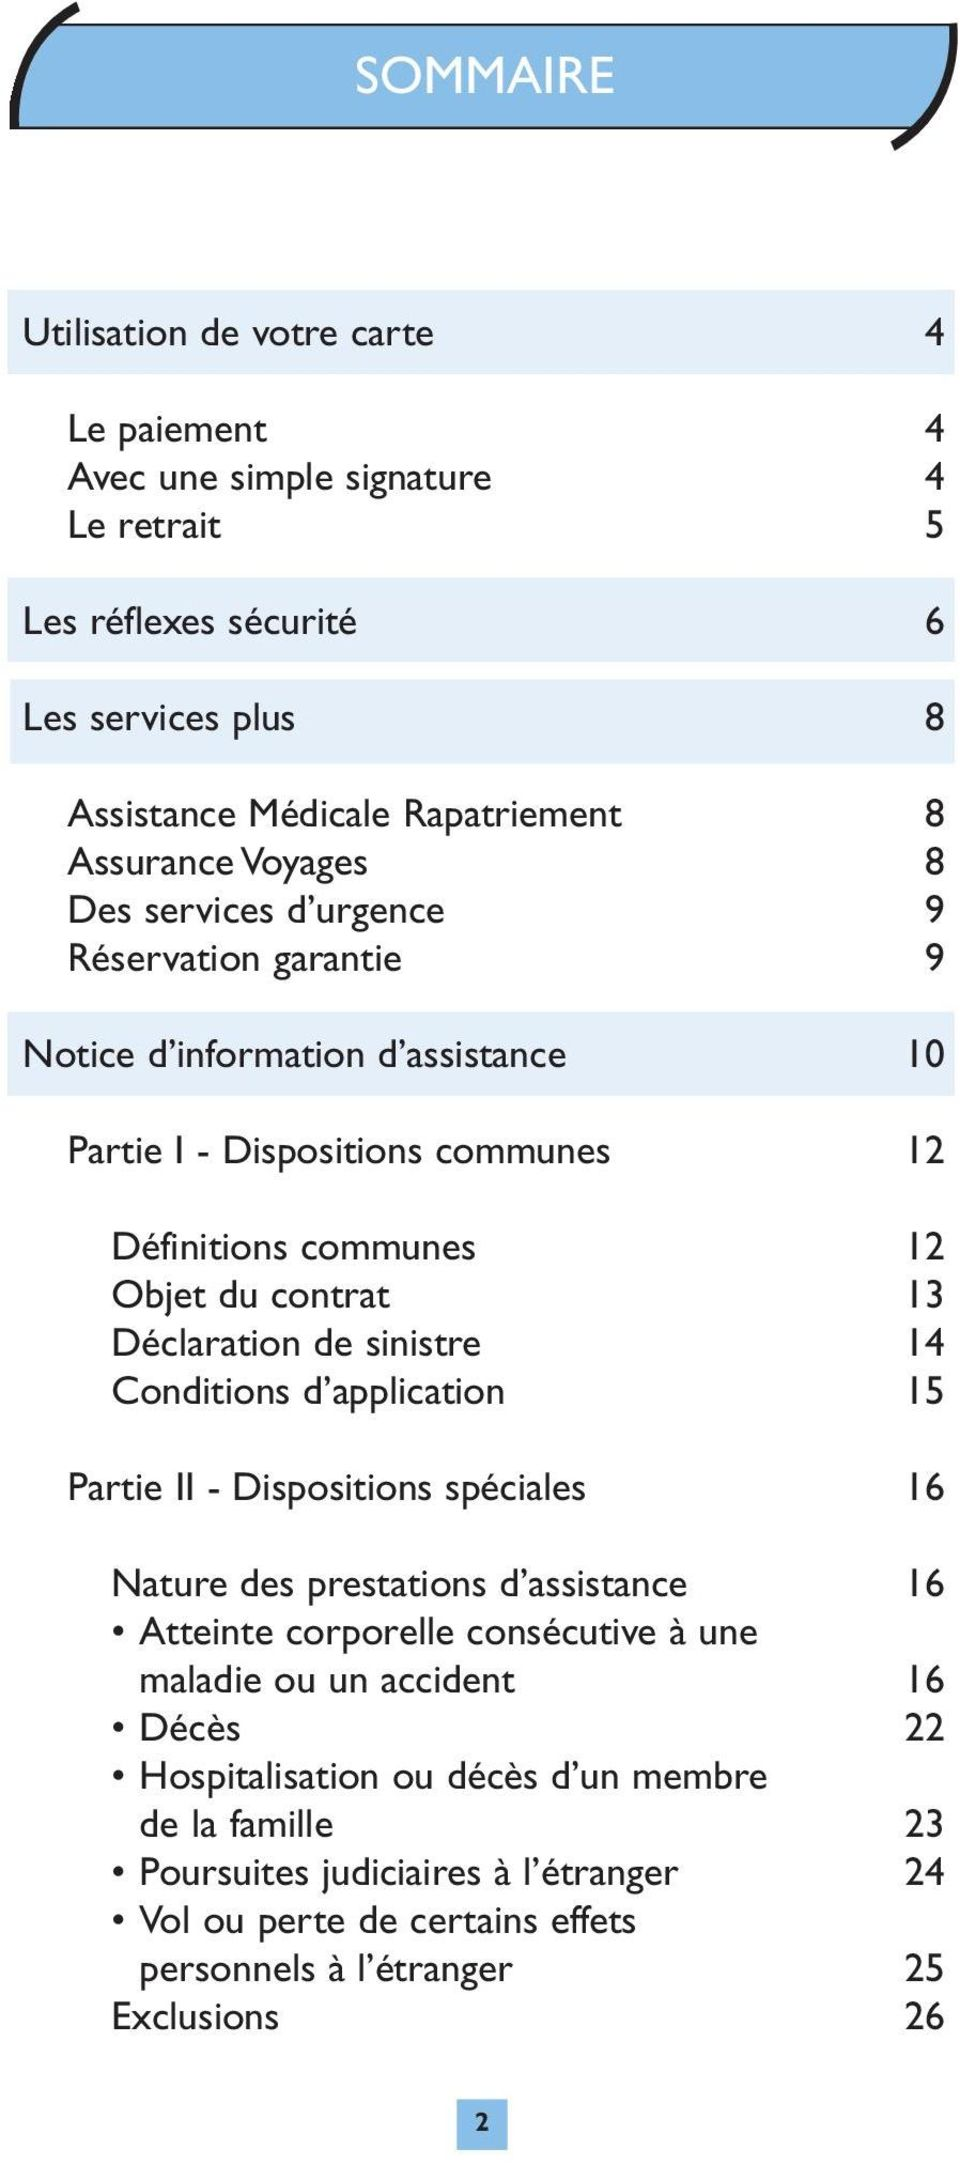 Déclaration de sinistre 14 Conditions d application 15 Partie II - Dispositions spéciales 16 Nature des prestations d assistance 16 Atteinte corporelle consécutive à une maladie ou